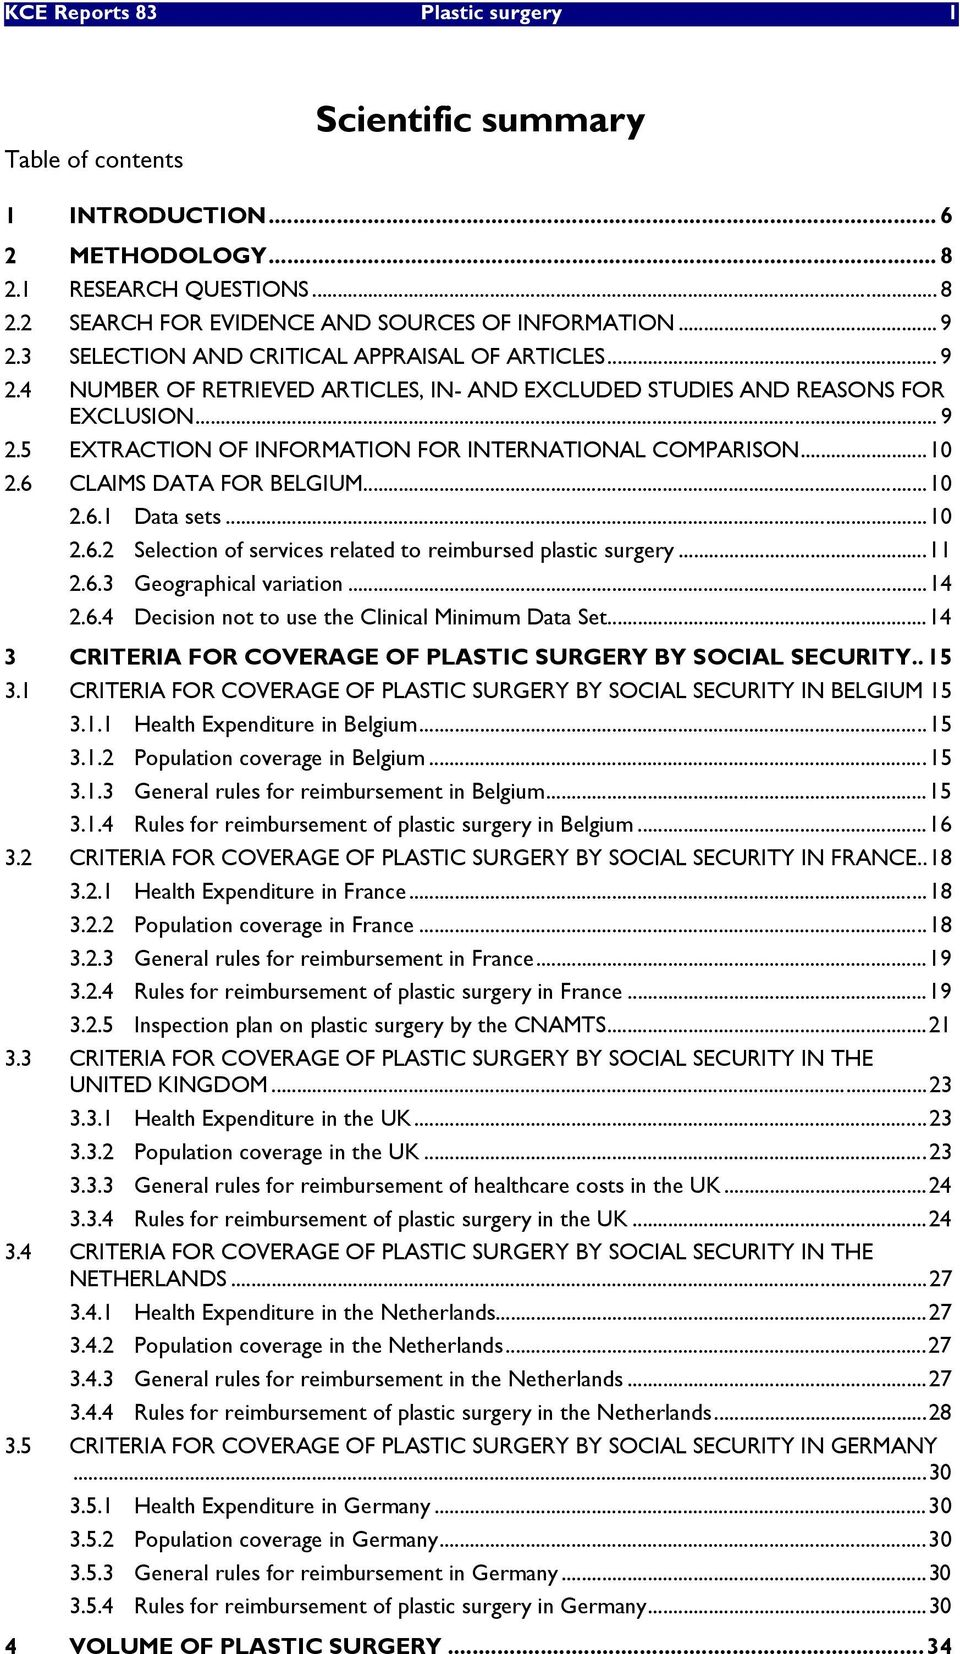 ..10 2.6 CLAIMS DATA FOR BELGIUM...10 2.6.1 Data sets...10 2.6.2 Selection of services related to reimbursed plastic surgery...11 2.6.3 Geographical variation...14 2.6.4 Decision not to use the Clinical Minimum Data Set.